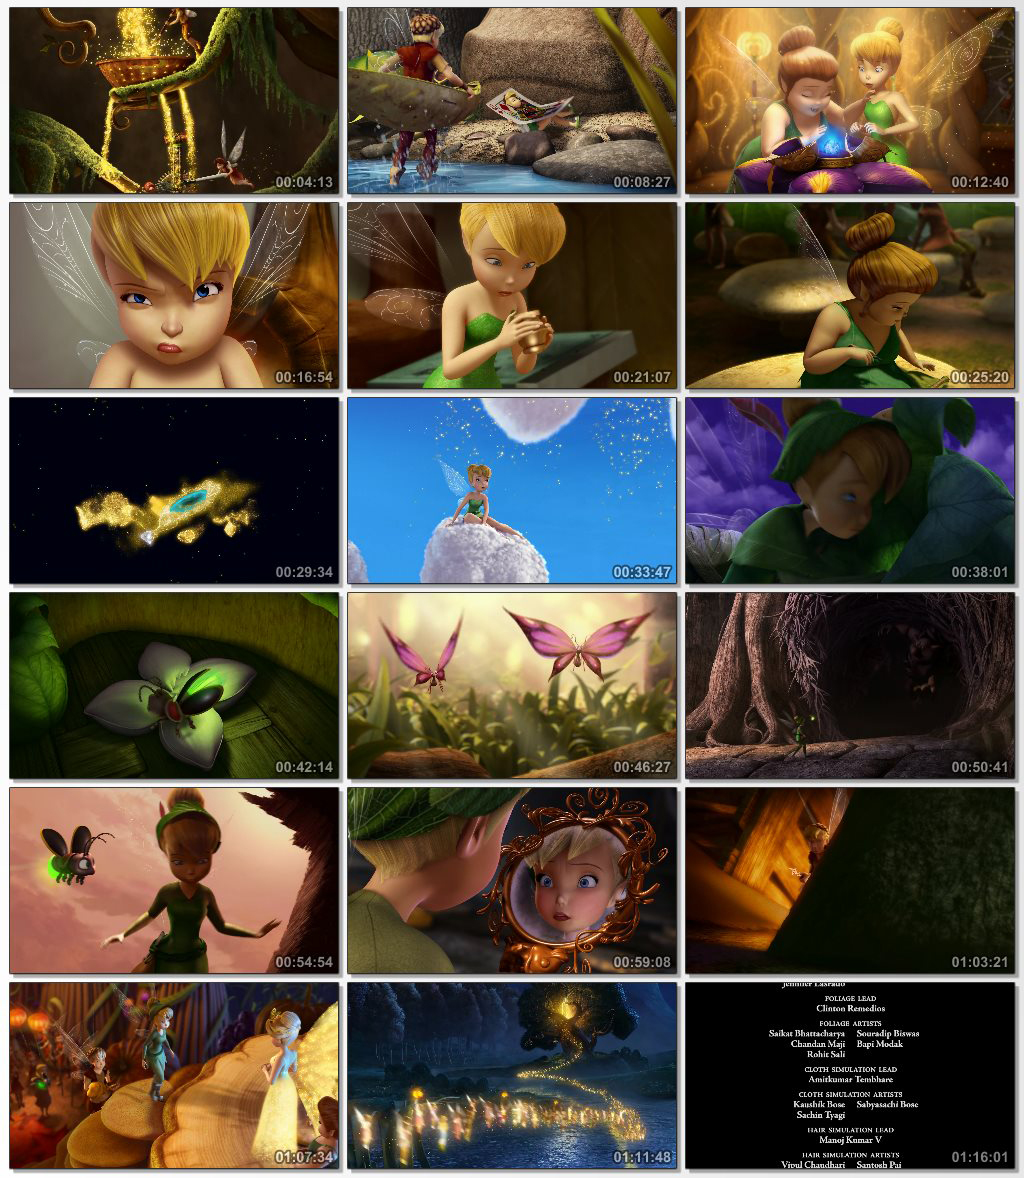 Tinker Bell and the.Lost.Treasure.2009.1080p.BluRay.5.1.www.download.ir.mp4_thumbs_[2014.11.19_16.55.37]